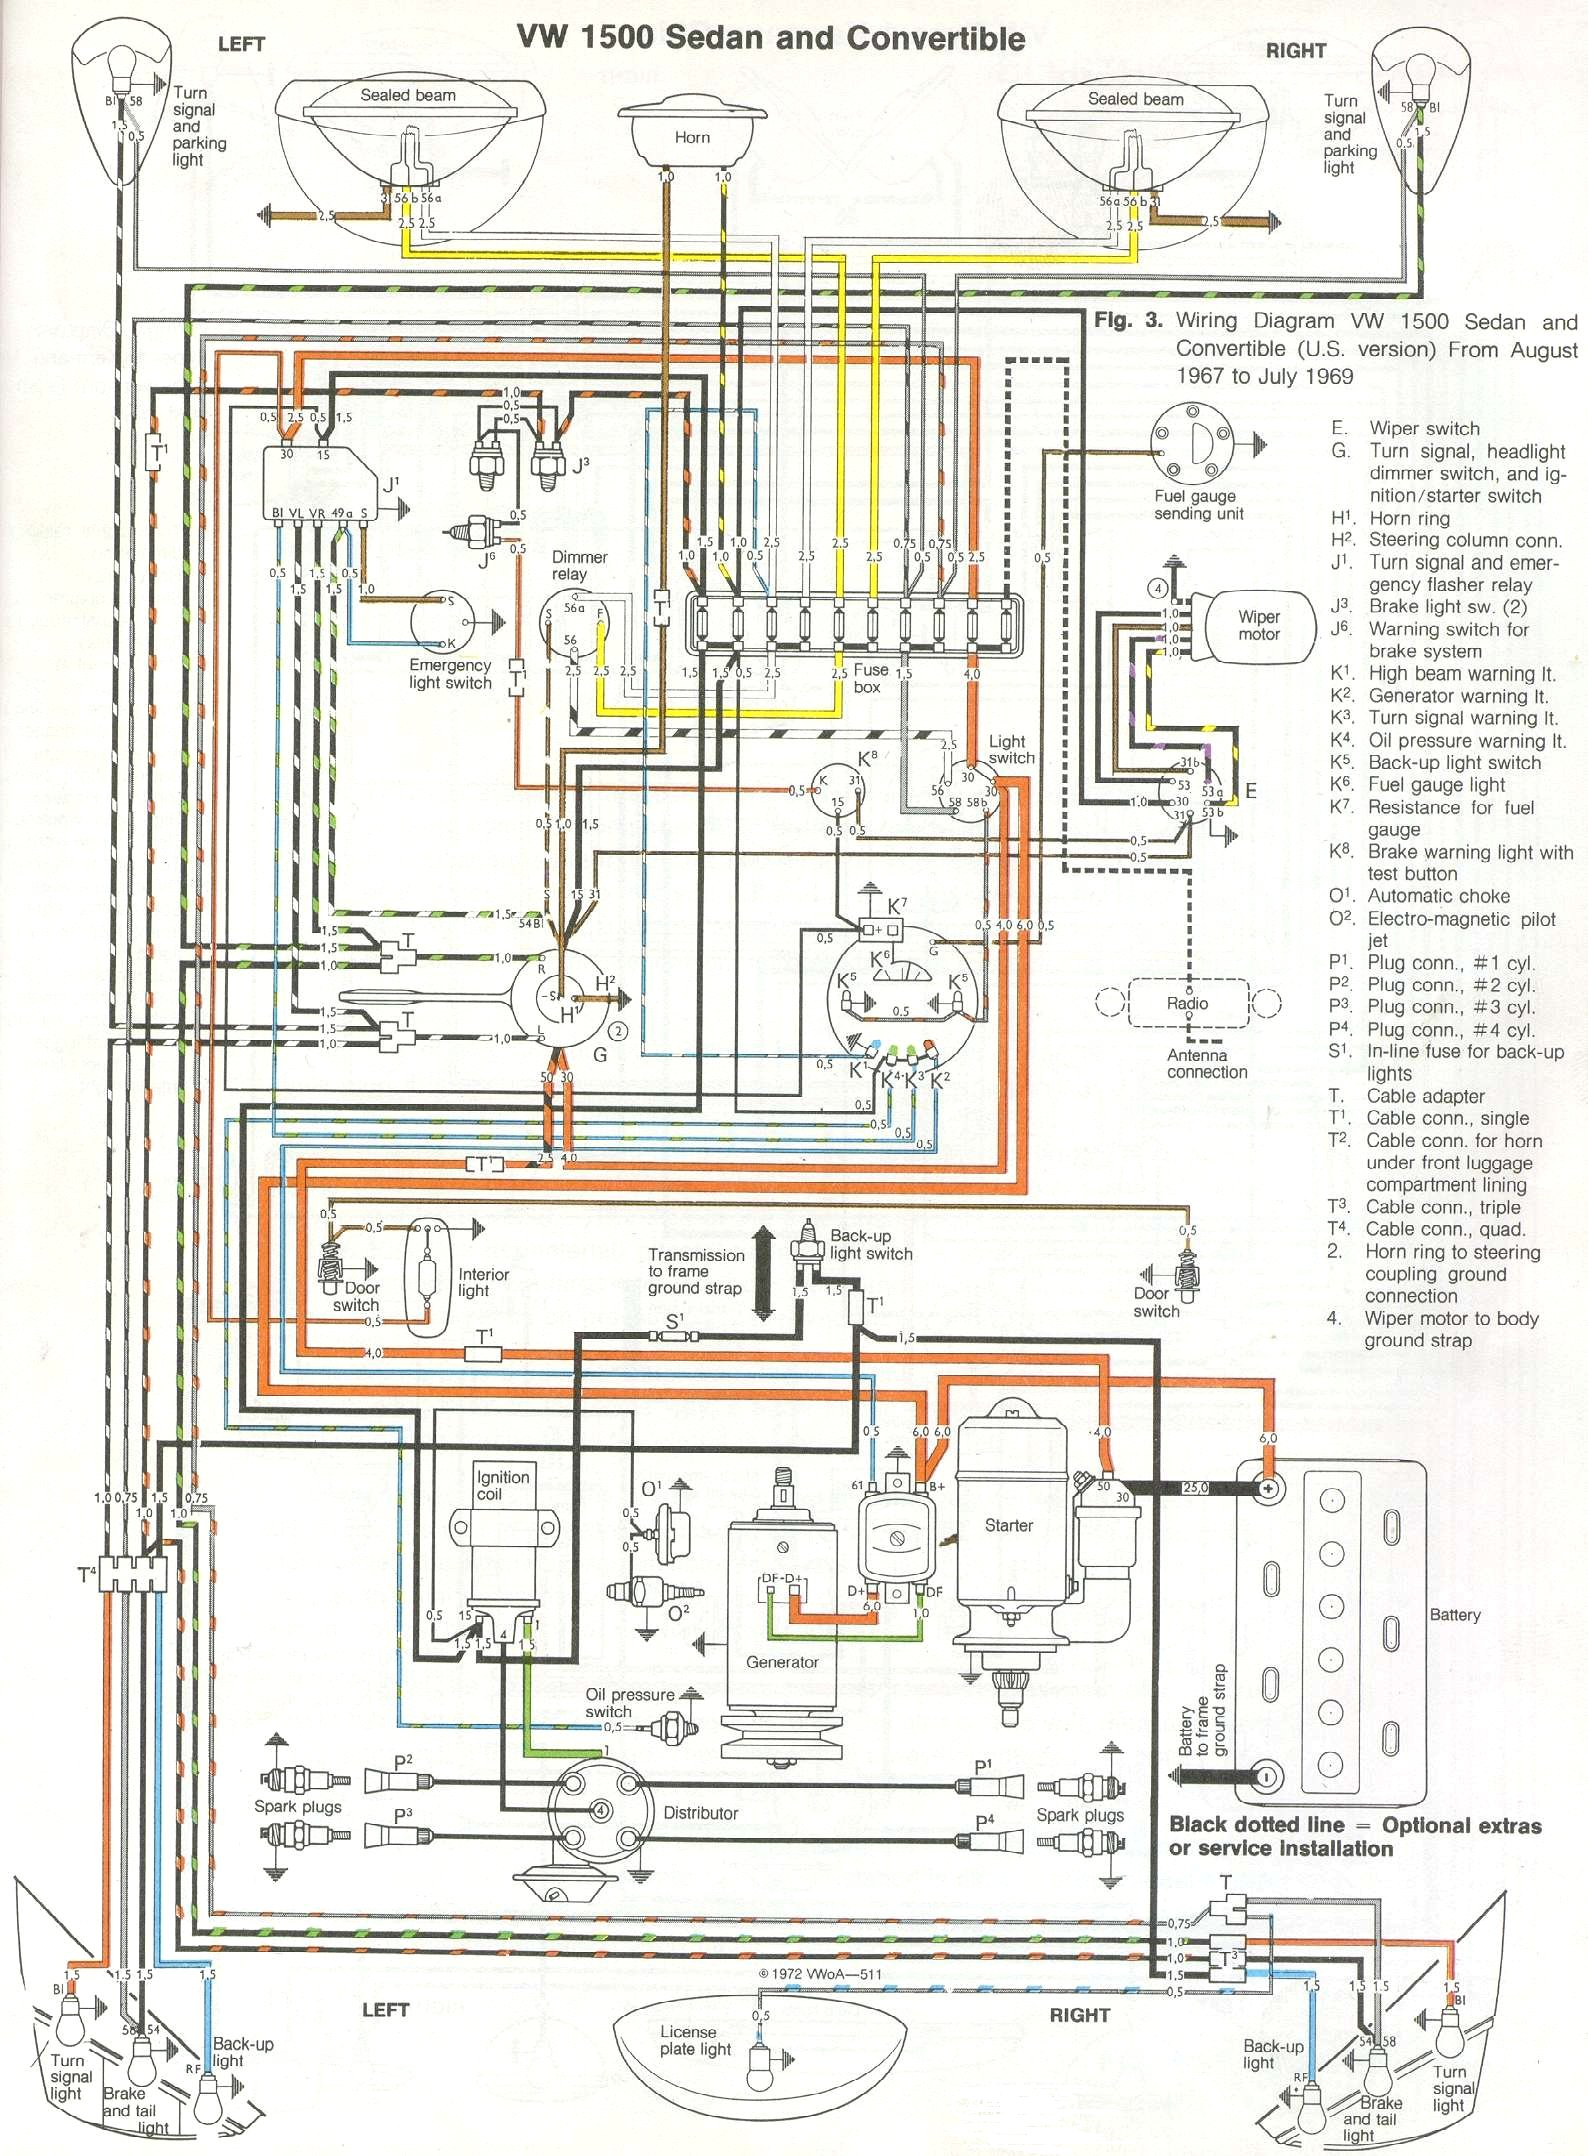 71 Vw Beetle Wire Diagram Auto Electrical Wiring Diagram 1971 VW Wiring  Diagram Colored 1973 Vw Wiring Diagram